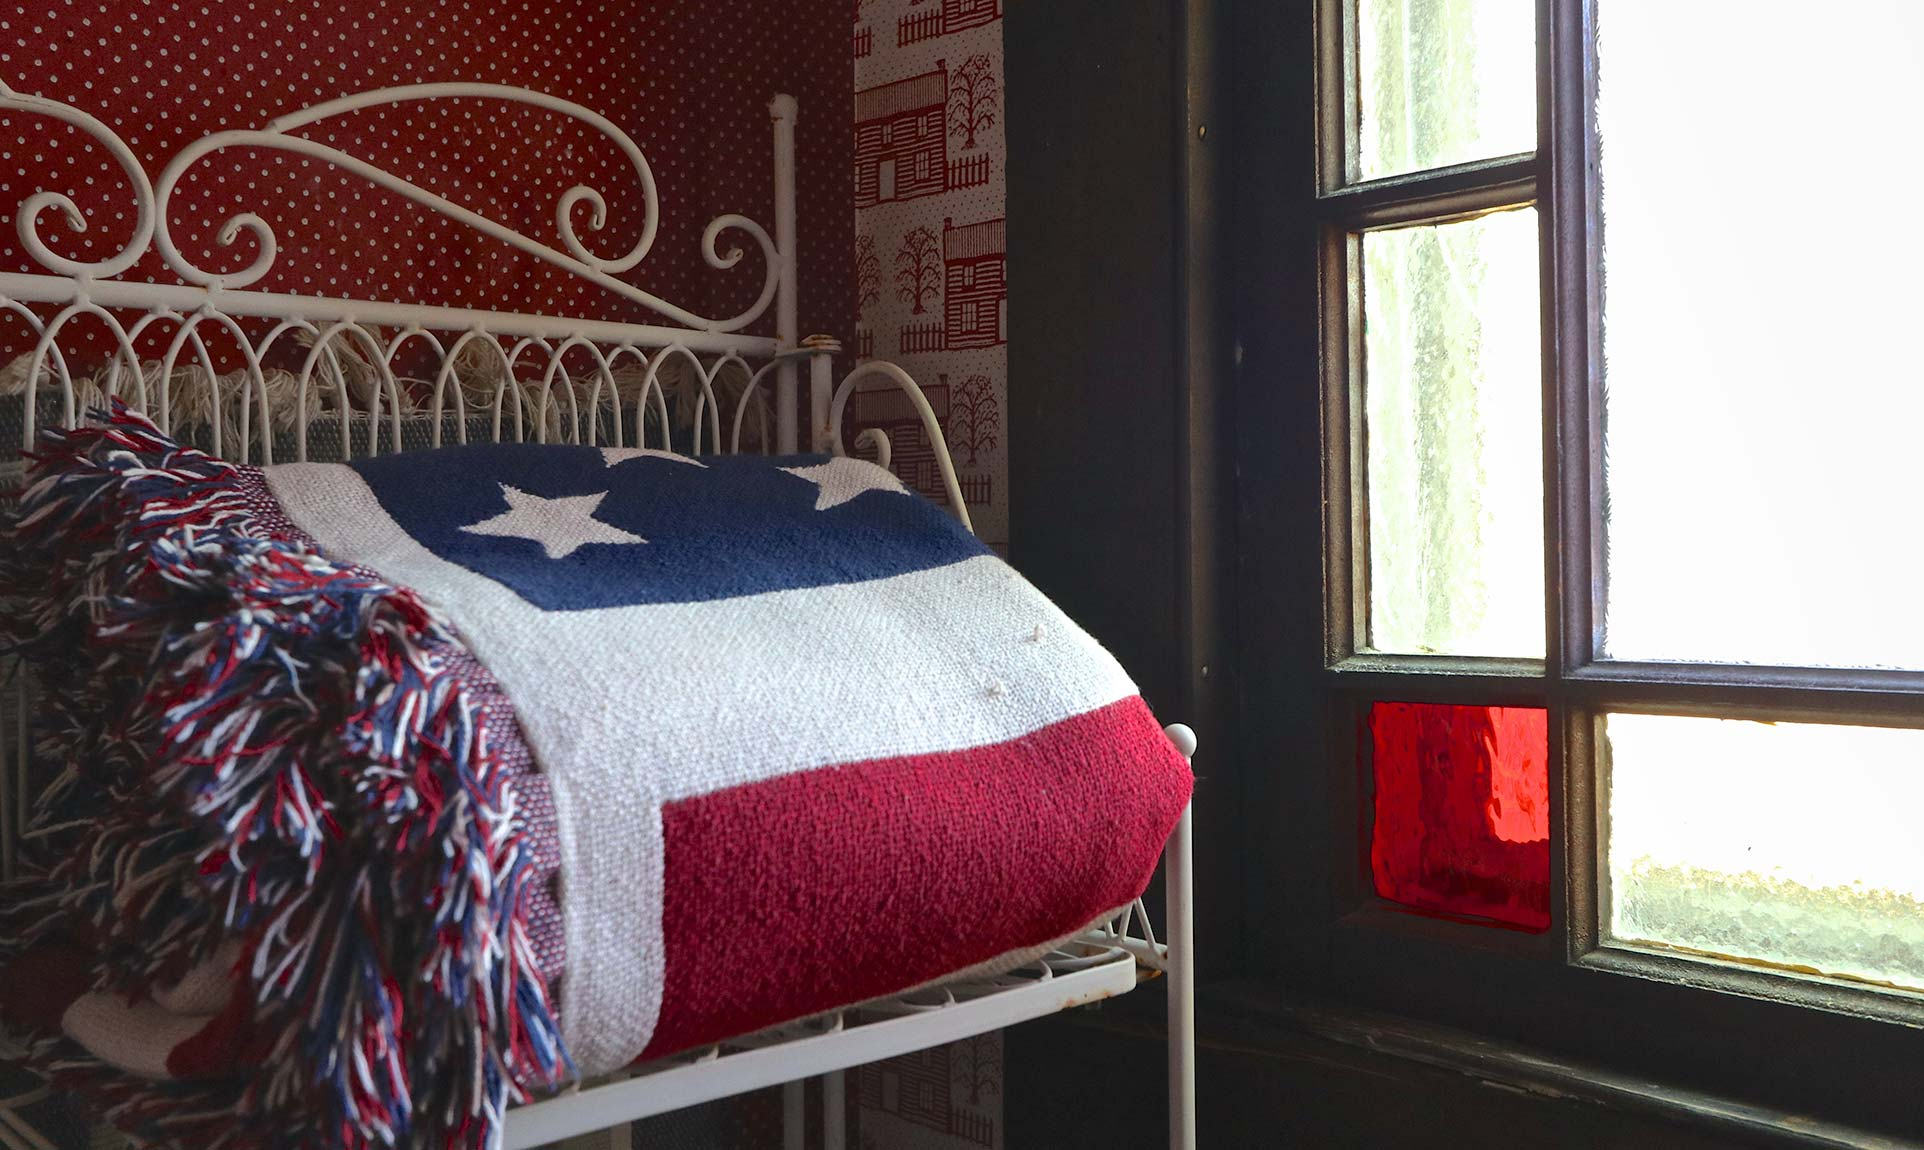 A wire table with a folded American flag blanket near a stained glass window